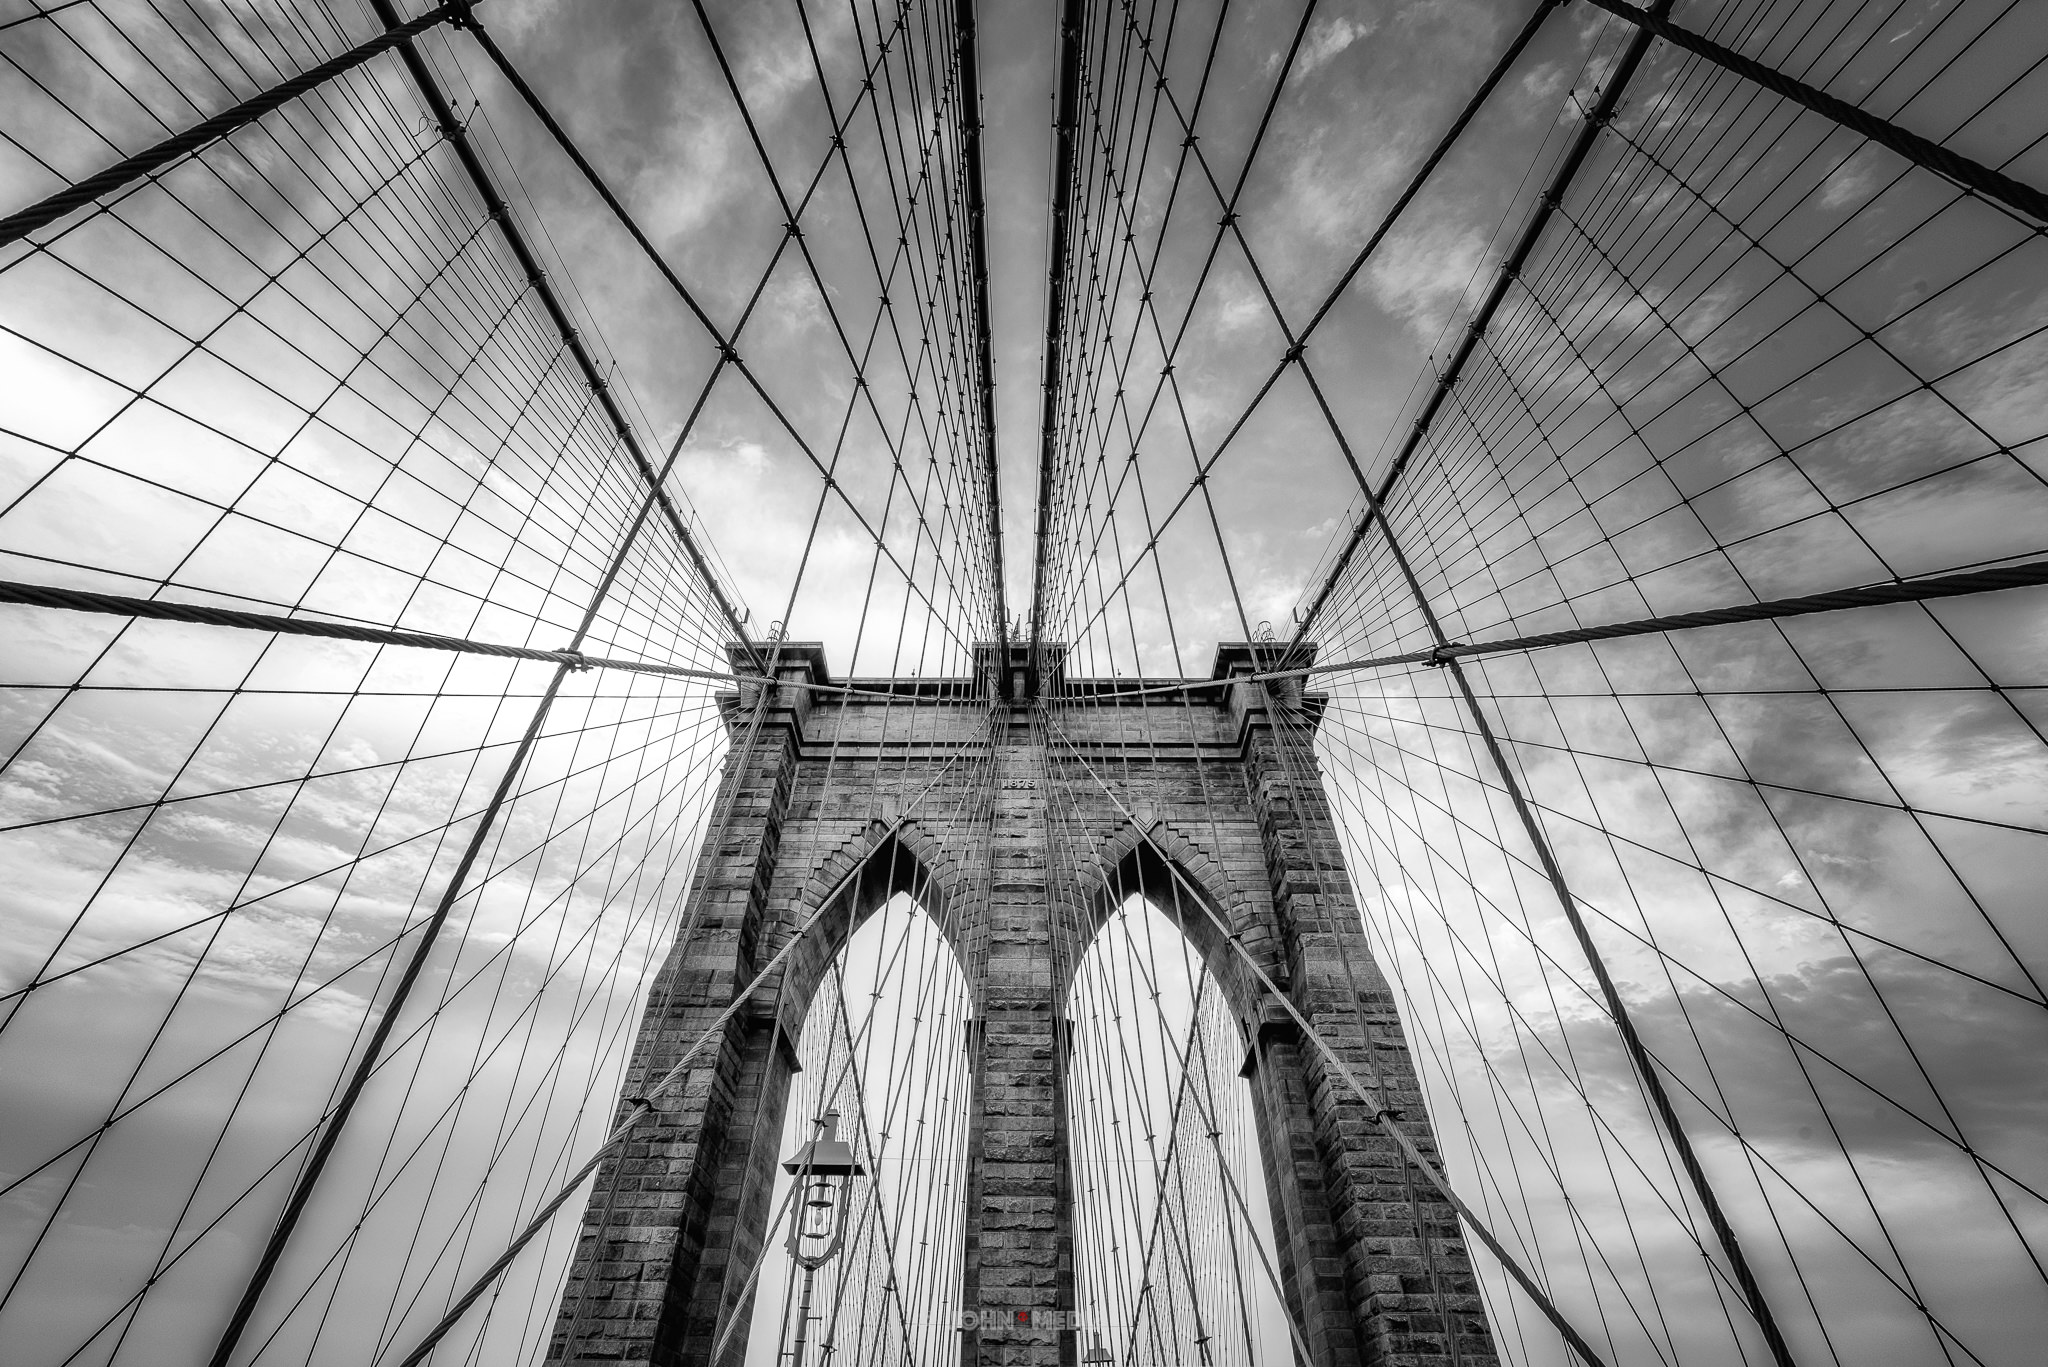 Brooklyn Bridge looking up